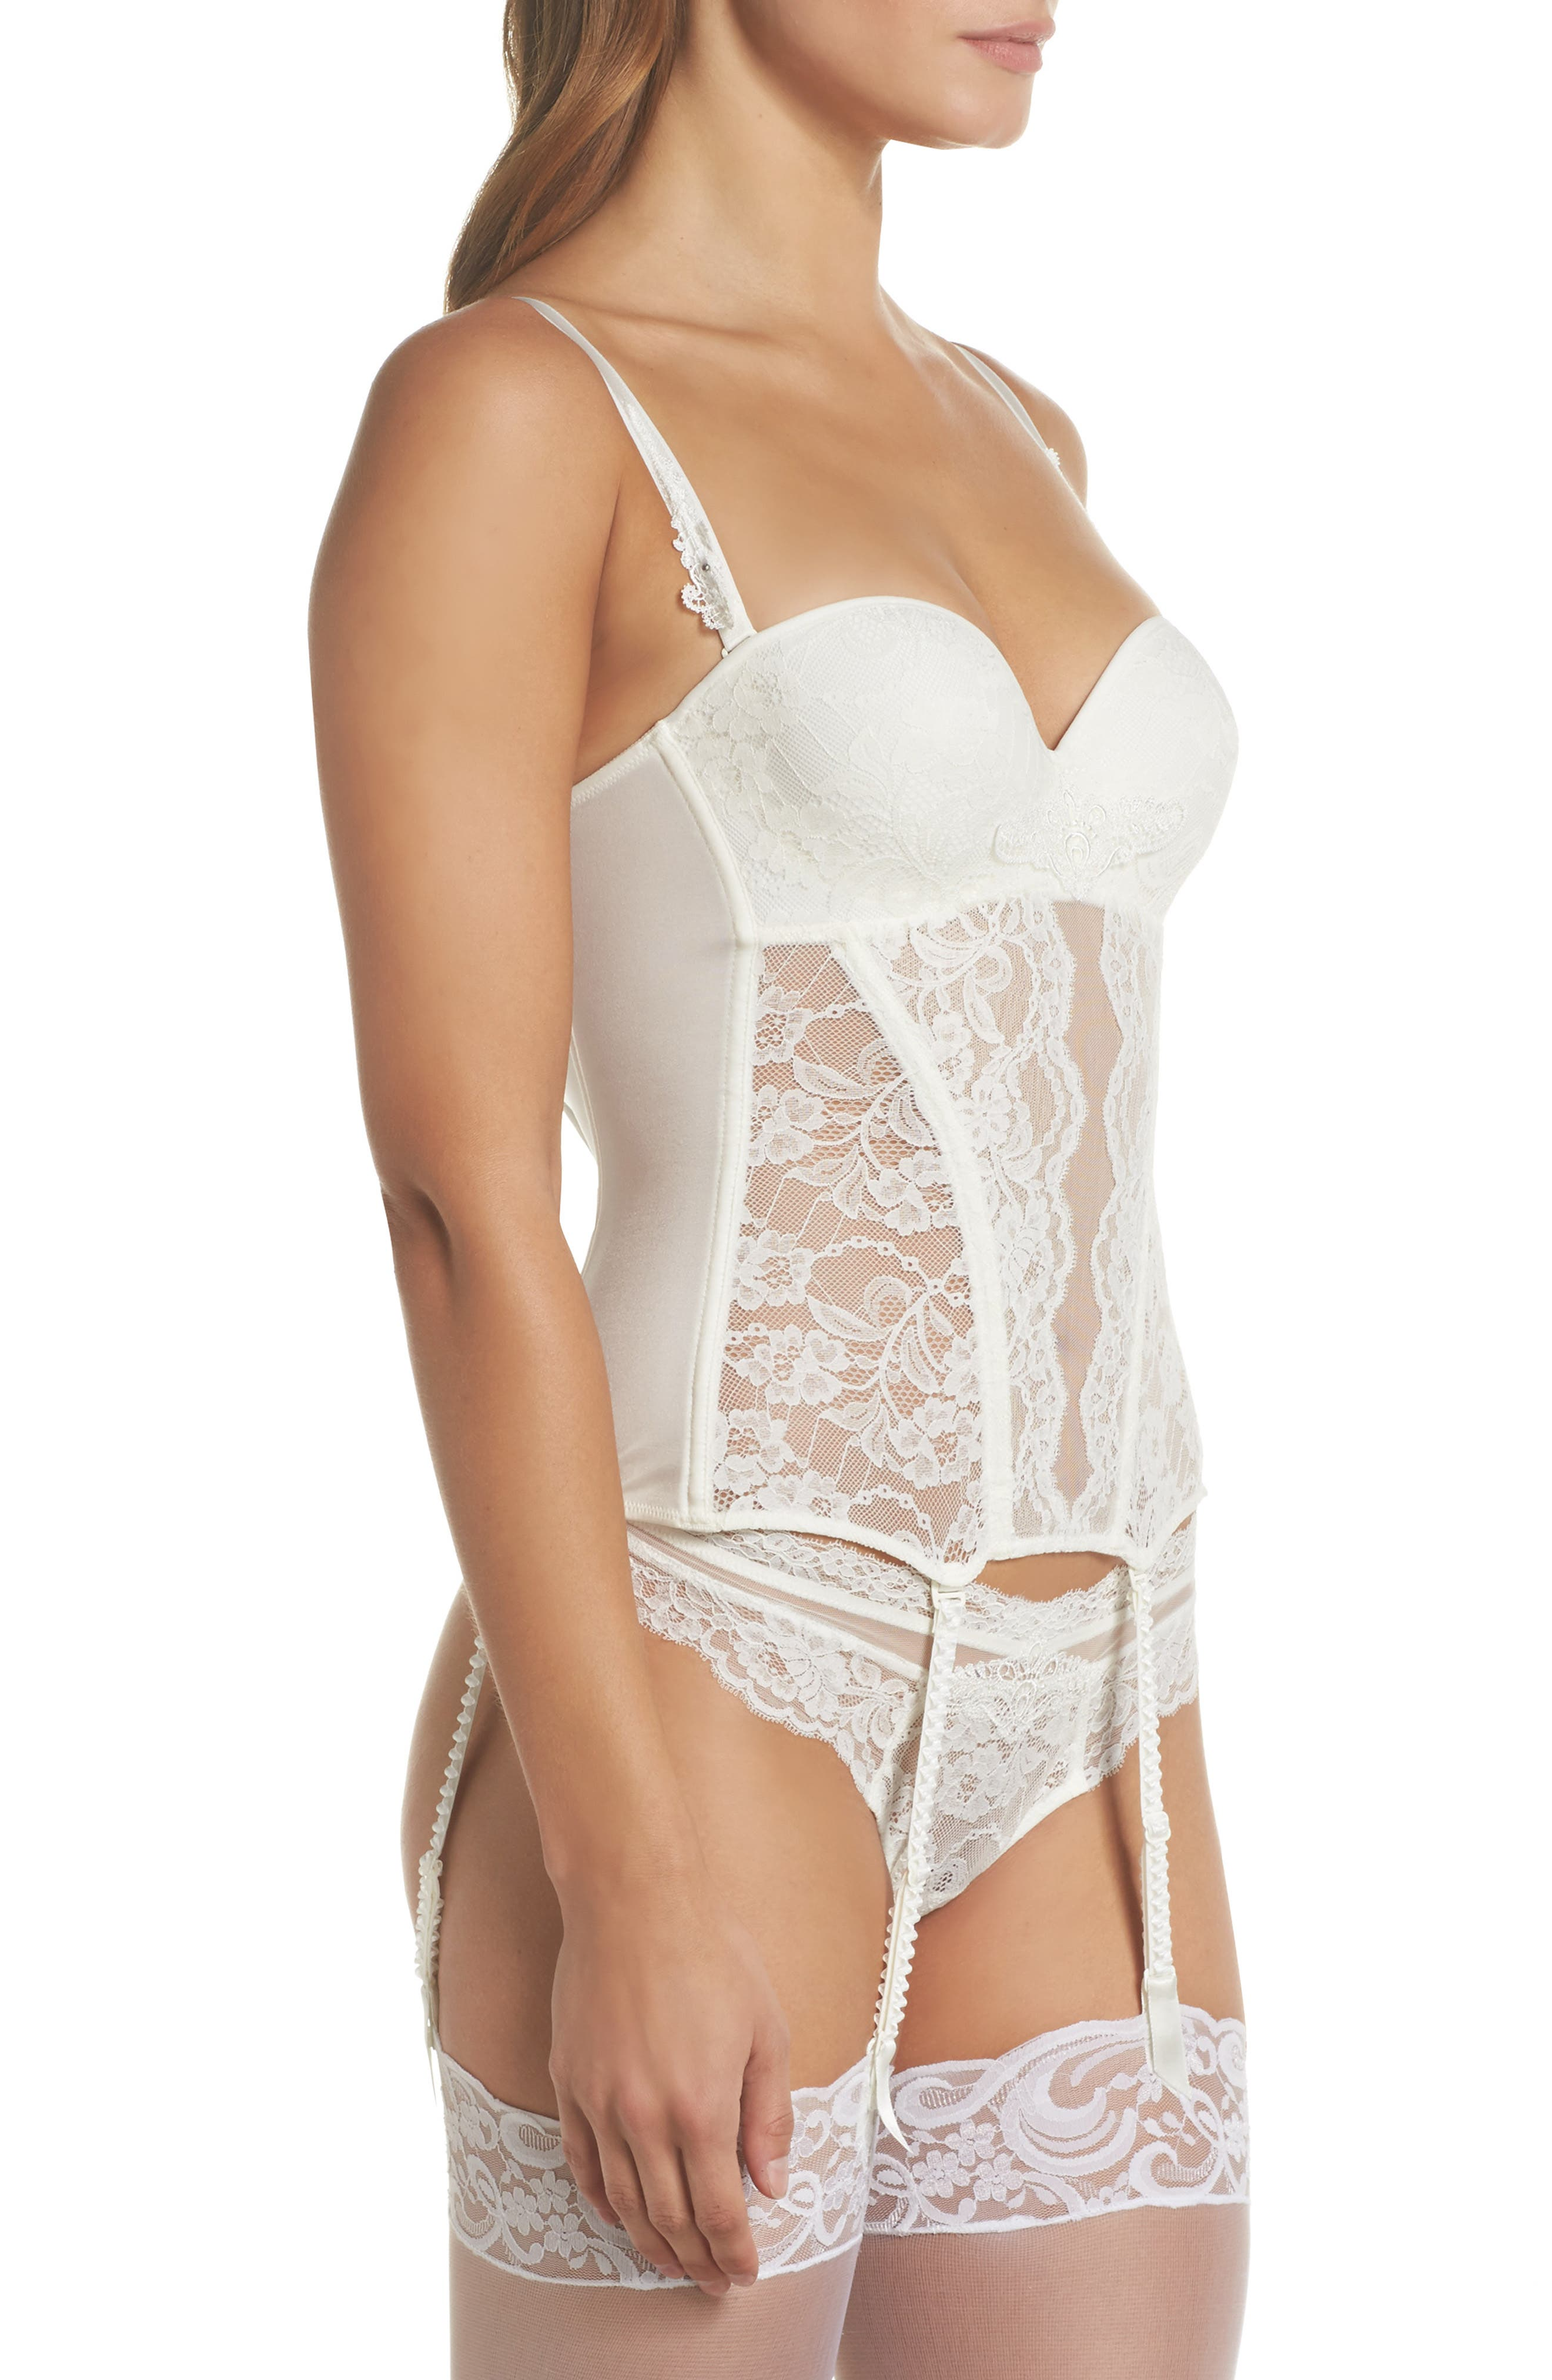 Exception Charme Thong,                             Alternate thumbnail 8, color,                             NACRE